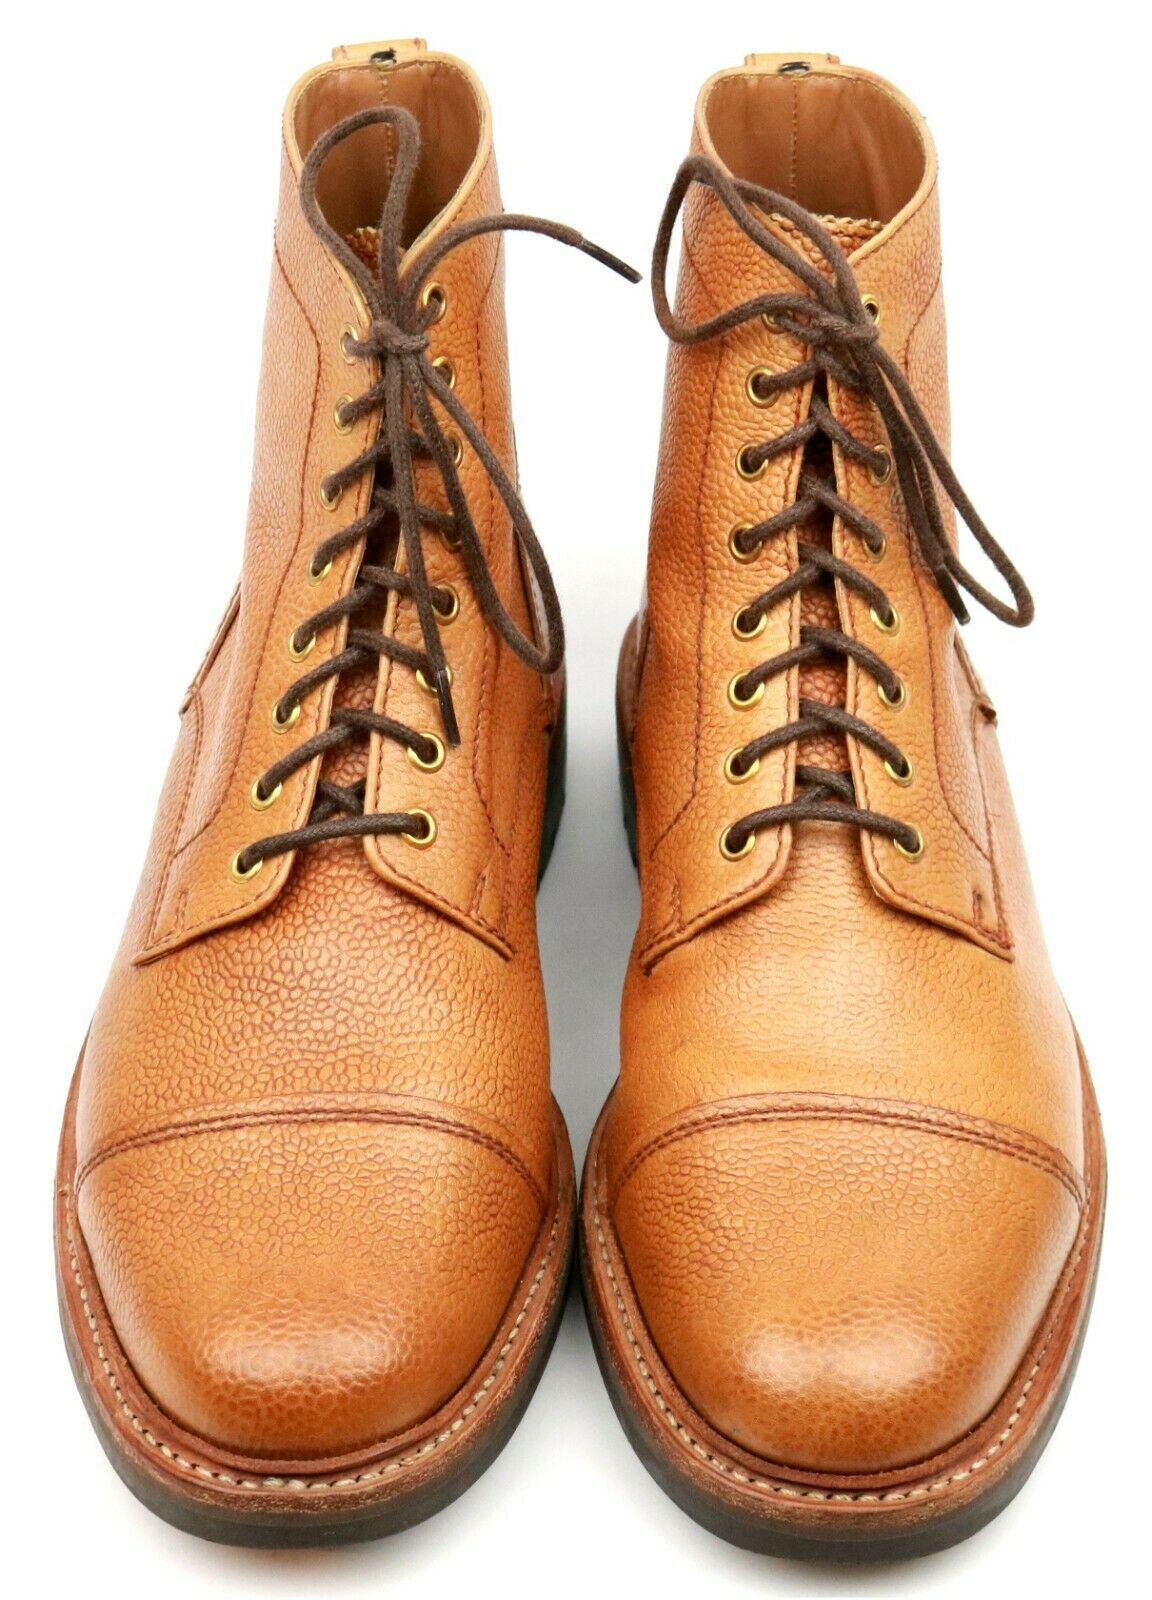 Grenson 'Joseph' Tan Brown Leather Derby Boots UK 8 G